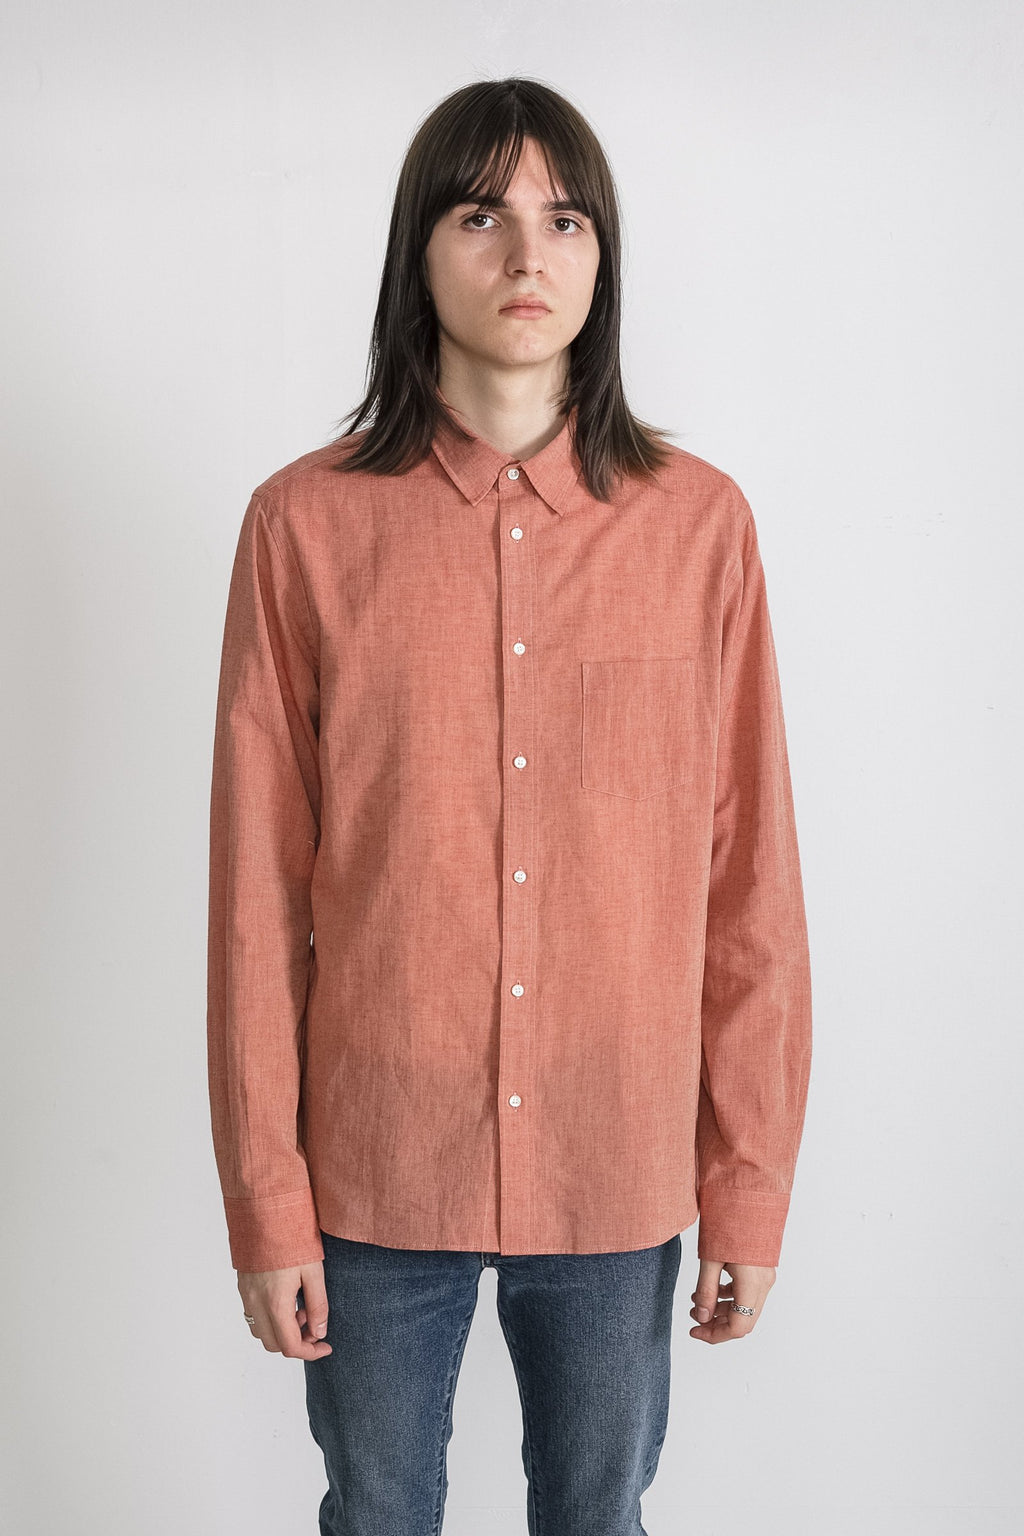 japanese-natural-chambray-in-red 01